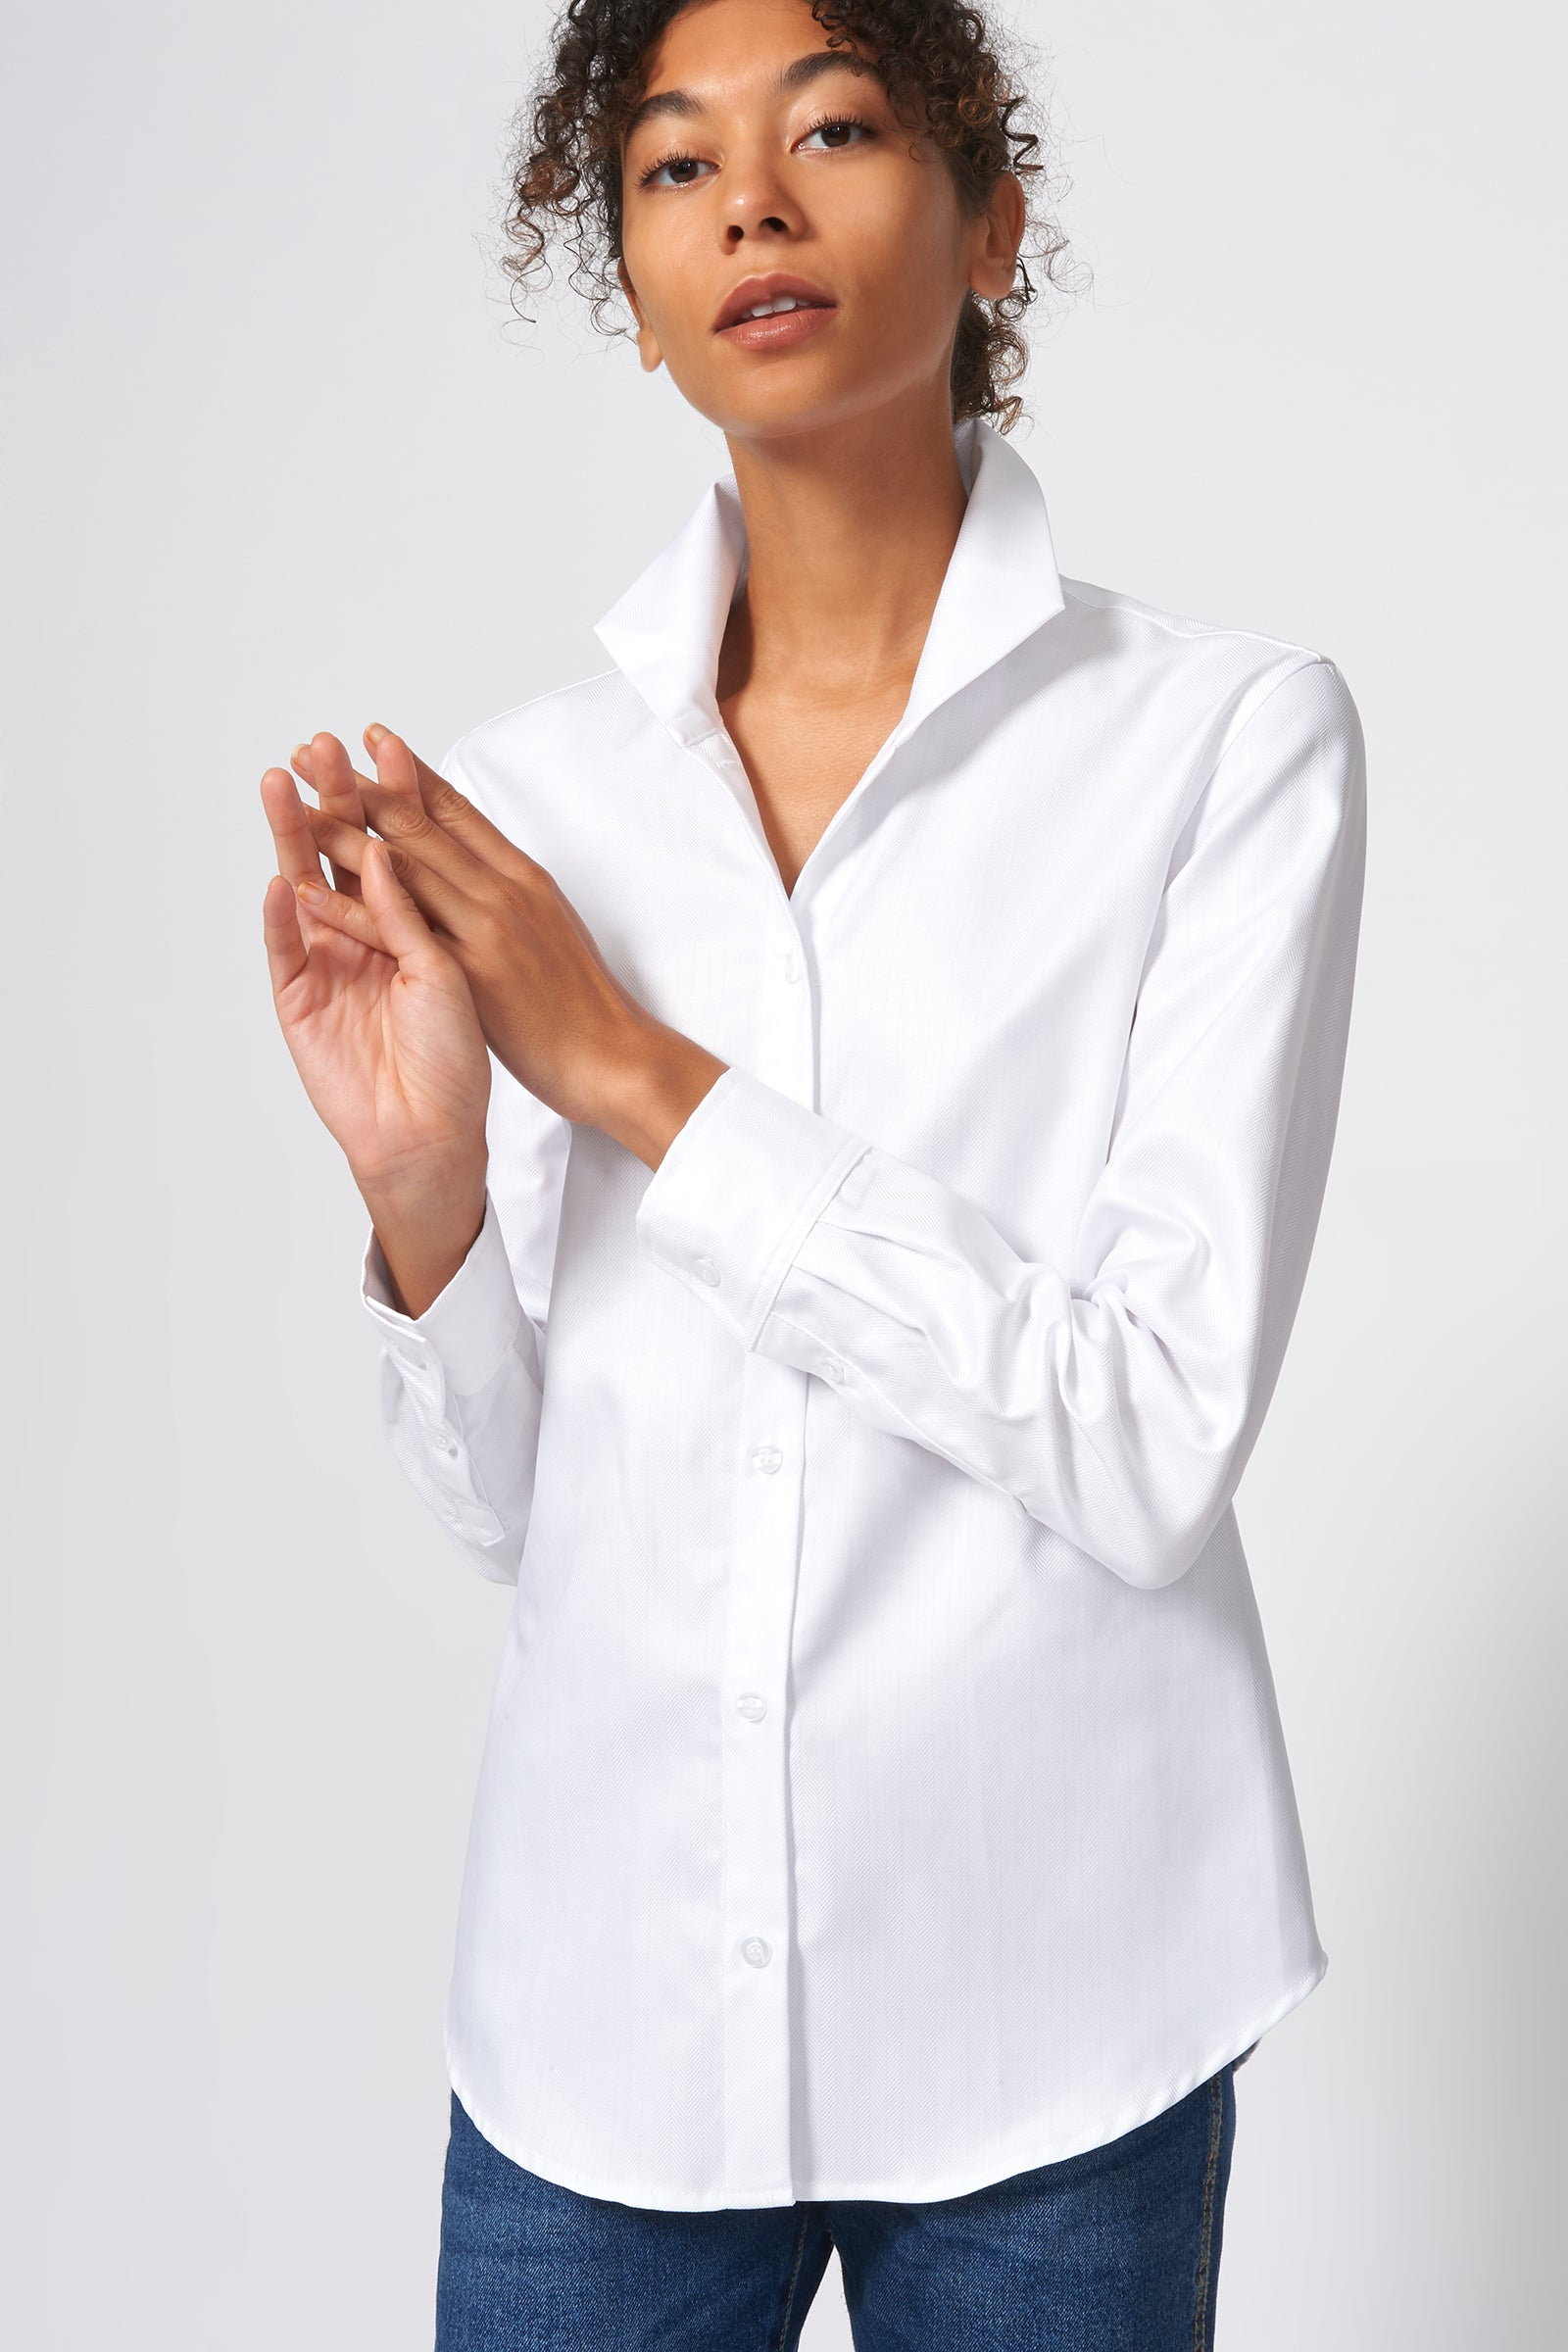 Kal Rieman Ginna Box Pleat Shirt in White Fine Herringbone on Model Front Alternate View